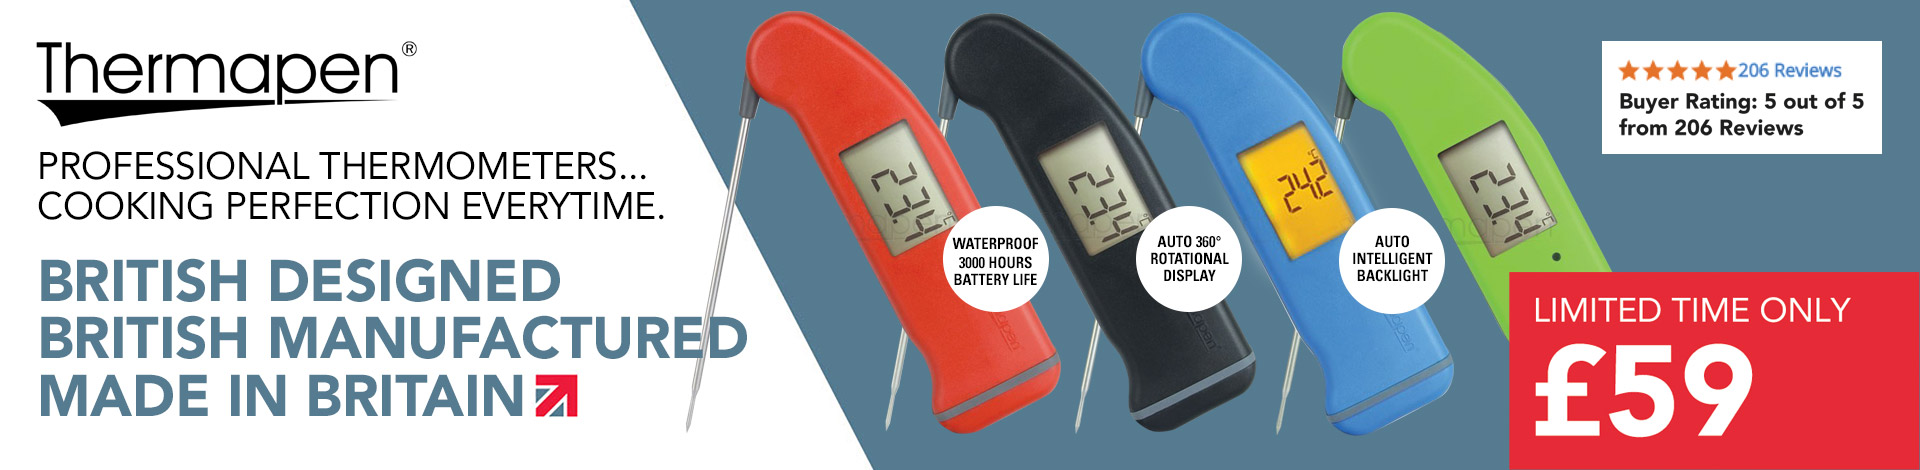 Thermapen thermometers banner